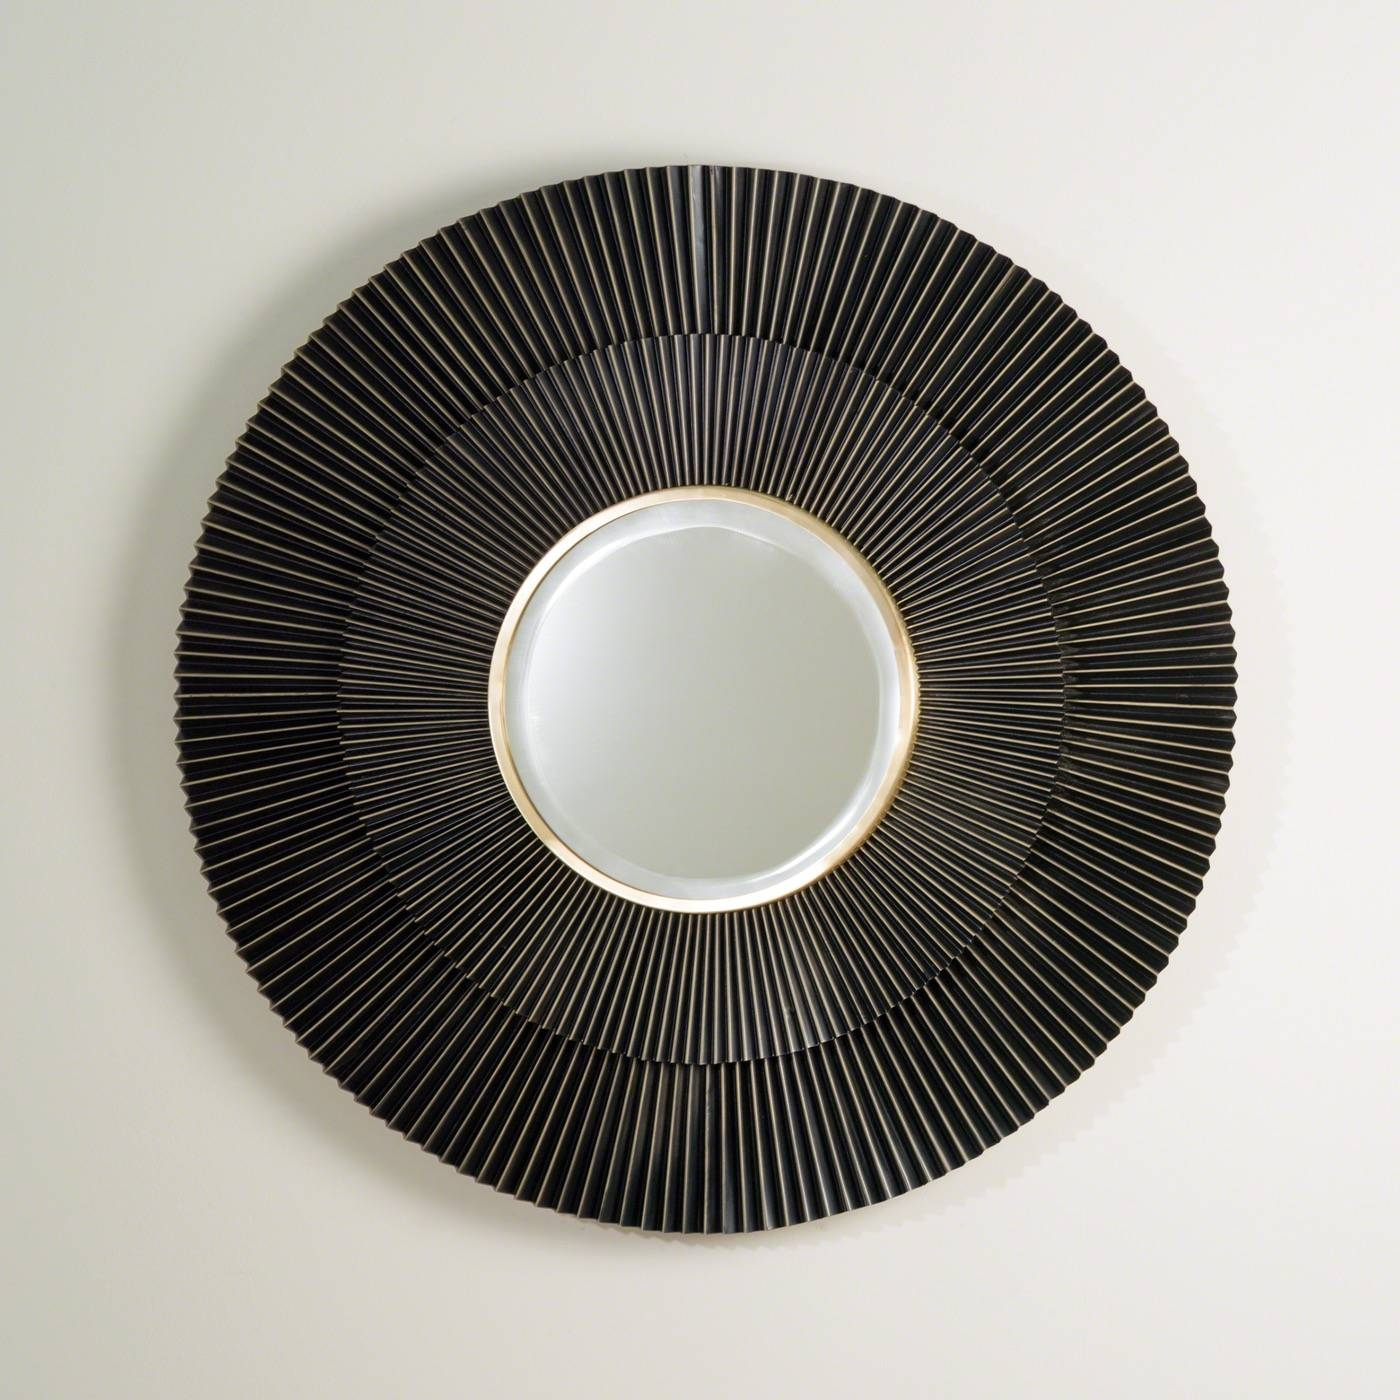 Pleated Bronze Wall Mirror | Plantation regarding Bronze Wall Mirrors (Image 13 of 25)